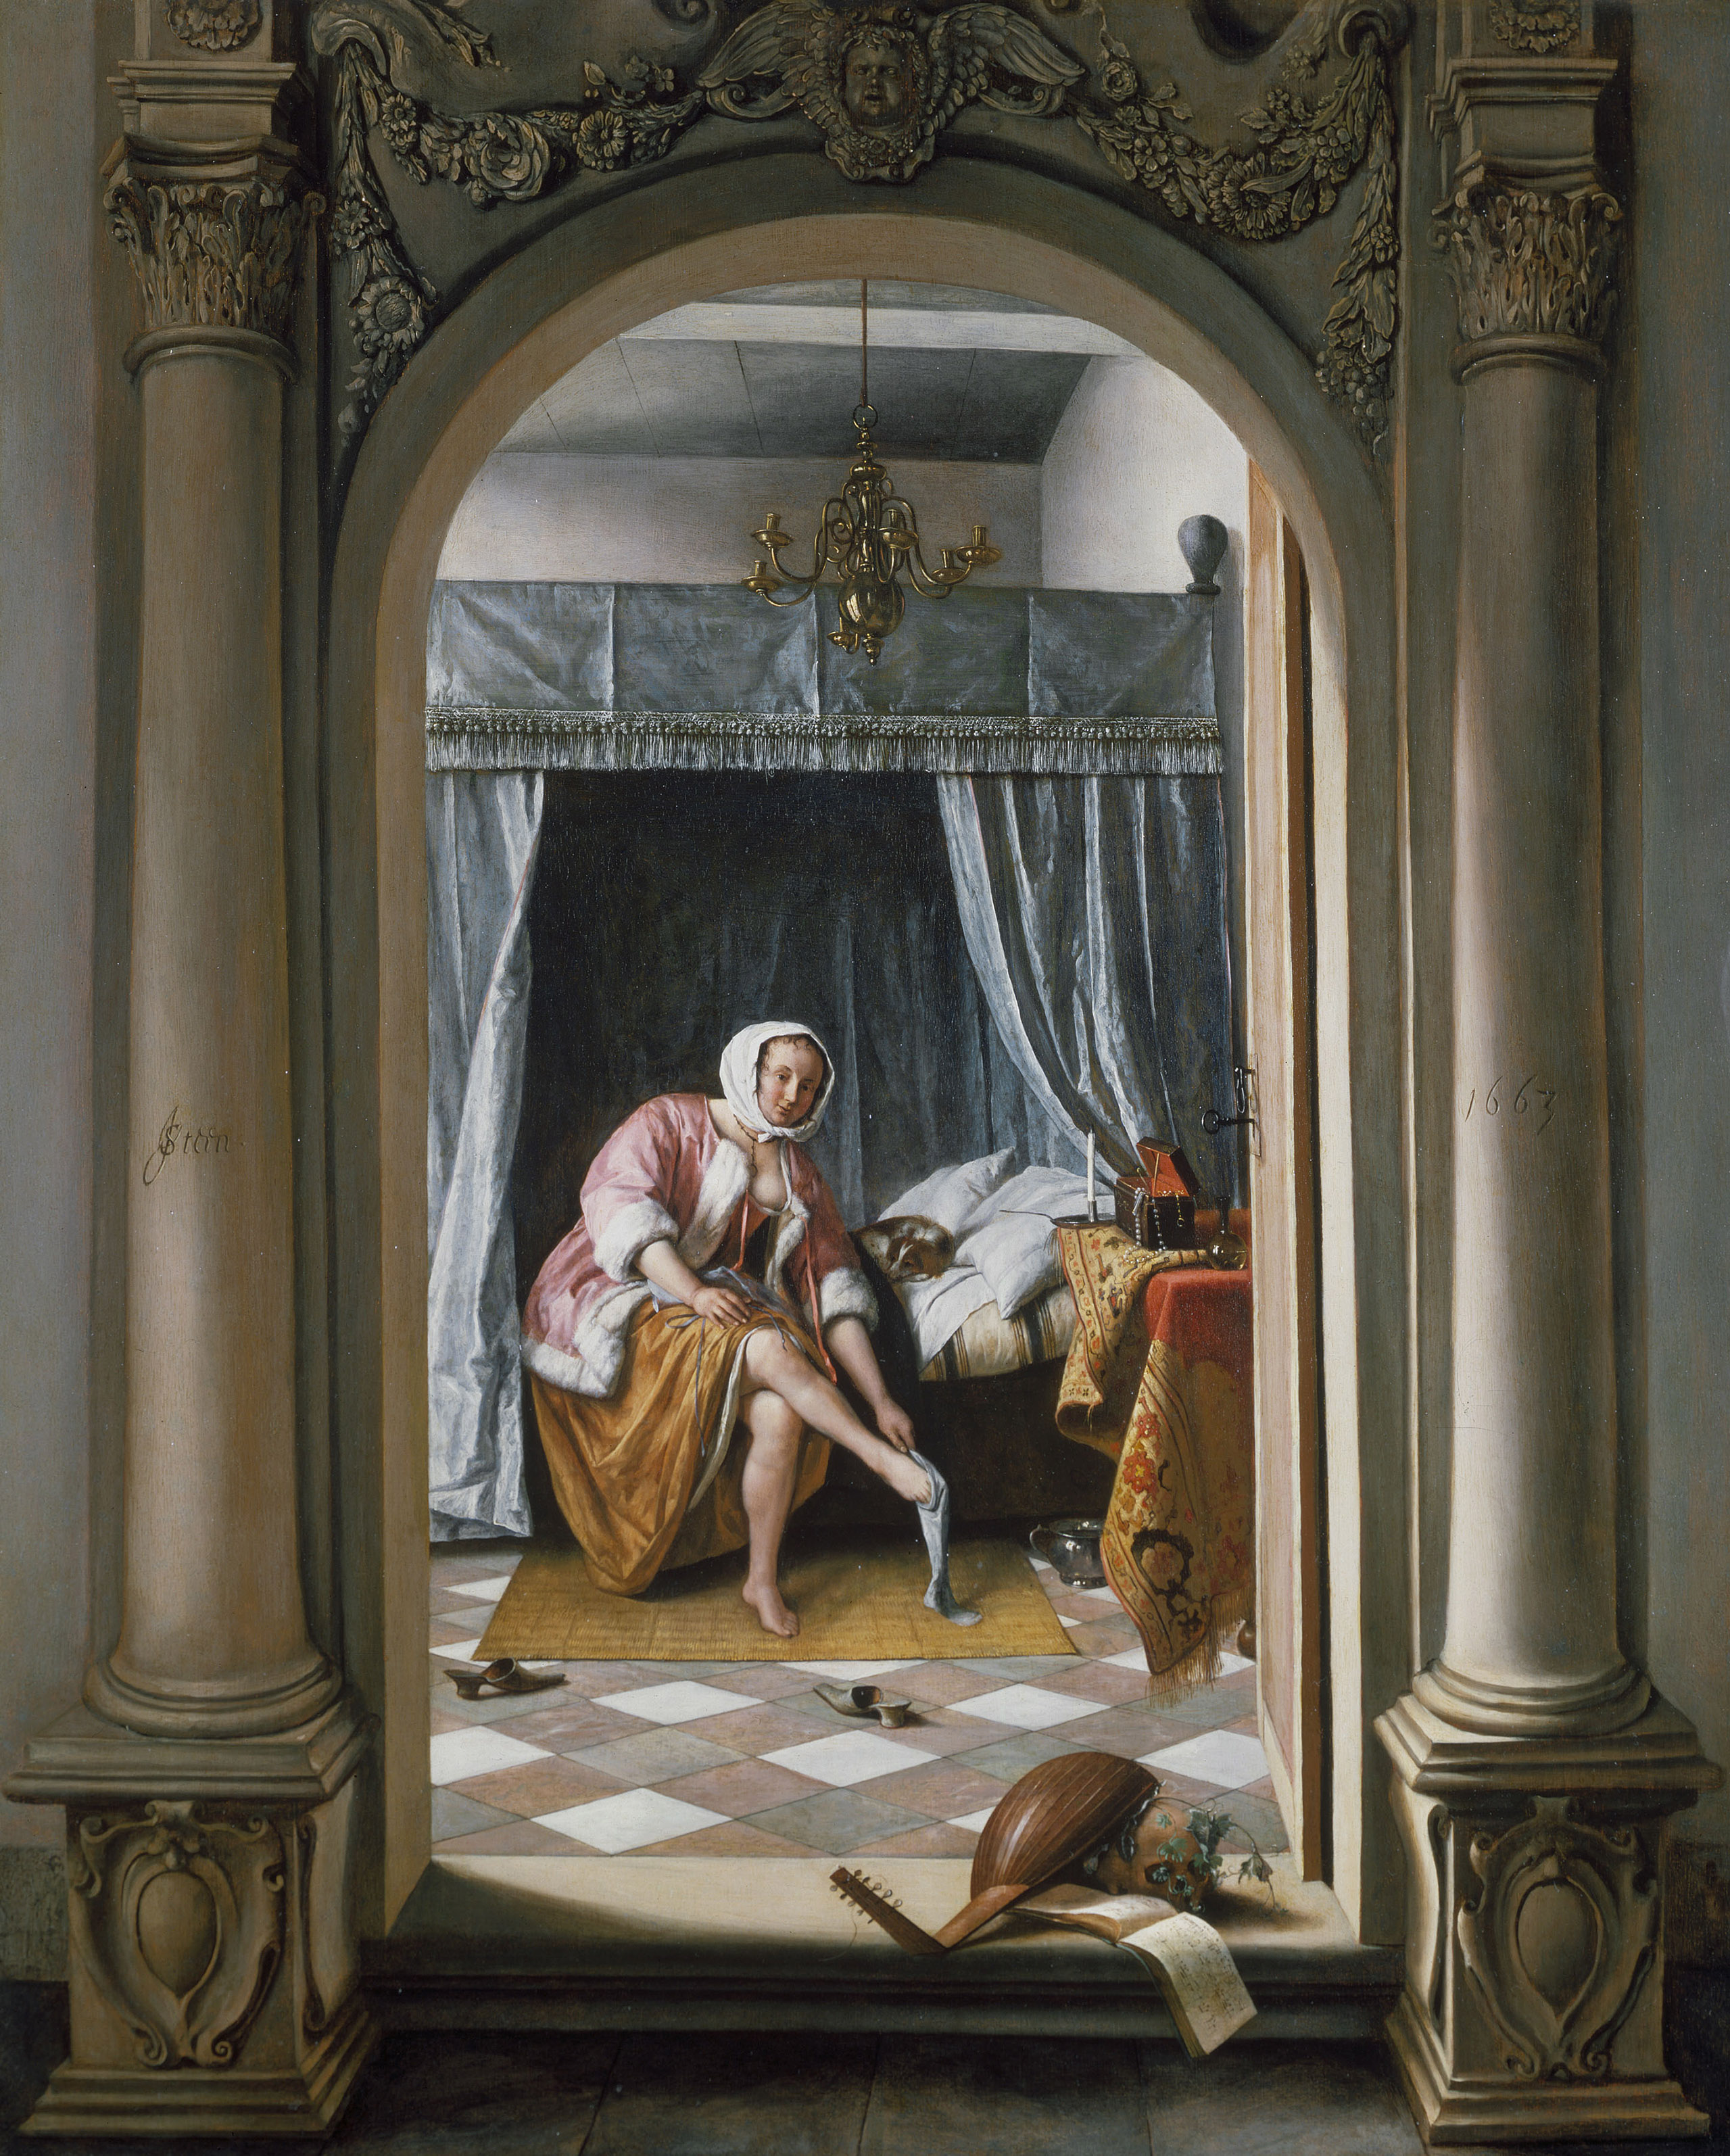 Jan Steen, A Woman at her Toilet, 1663